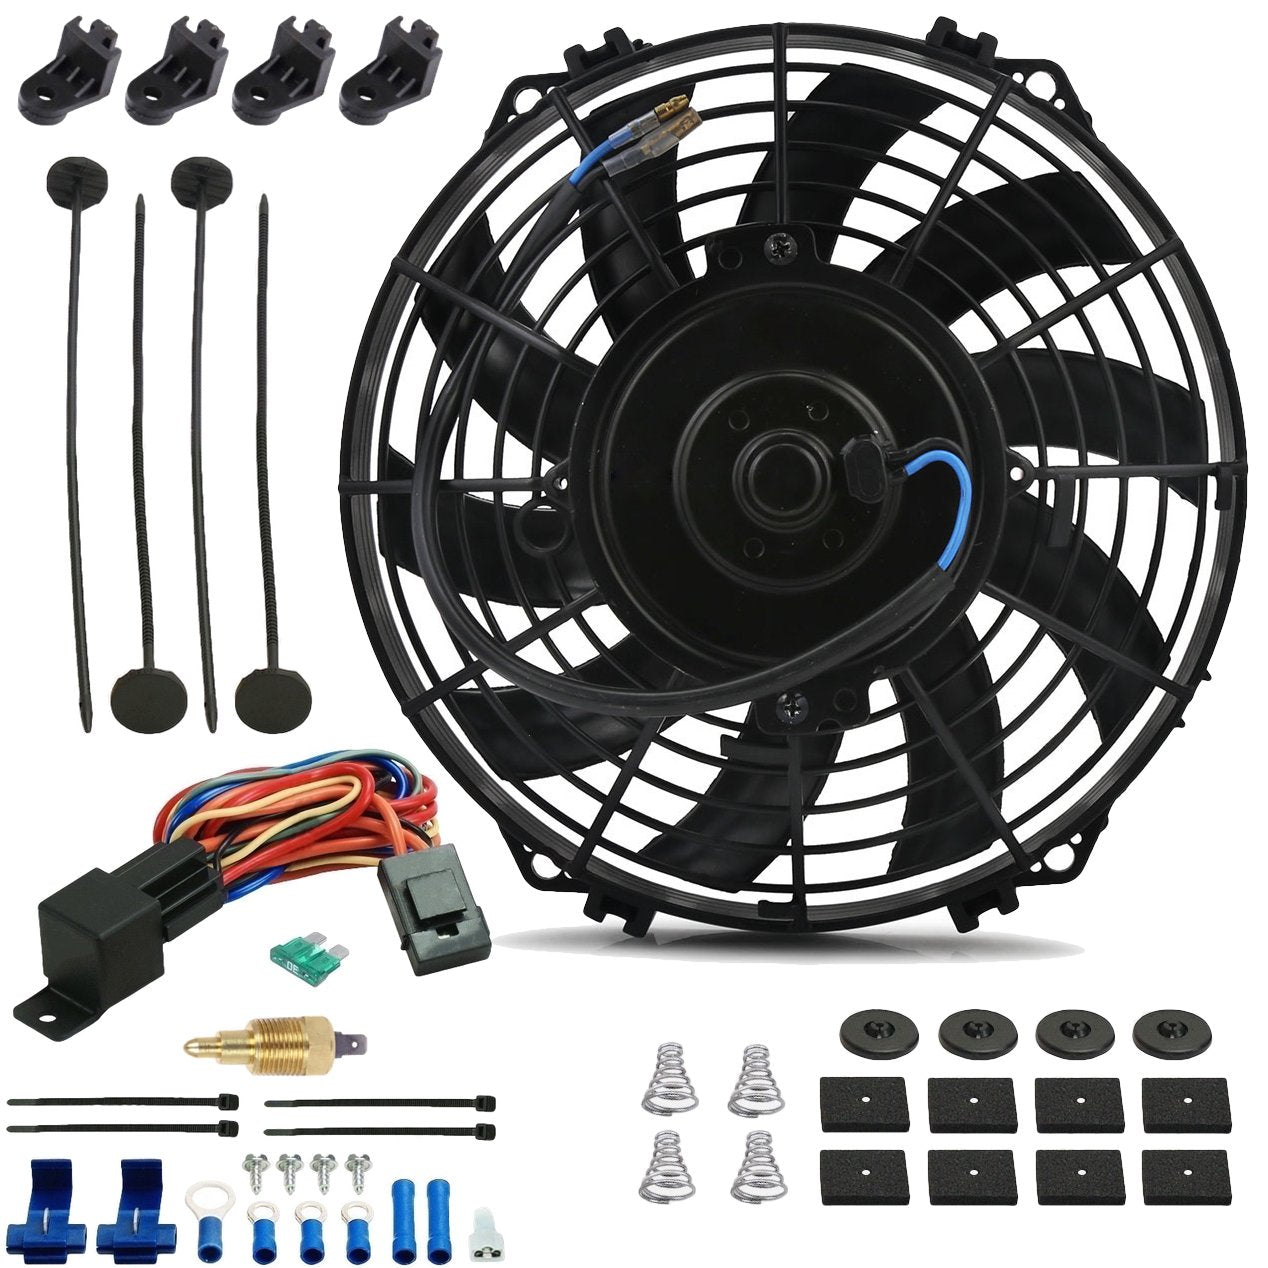 "9"" Inch 90w Motor Electric Radiator Cooling Fan NPT Ground Thermostat Temperature Switch Kit-Single Electric Fans-American Volt-1/8"" NPT-140'F On - 125'F Off-American Volt"